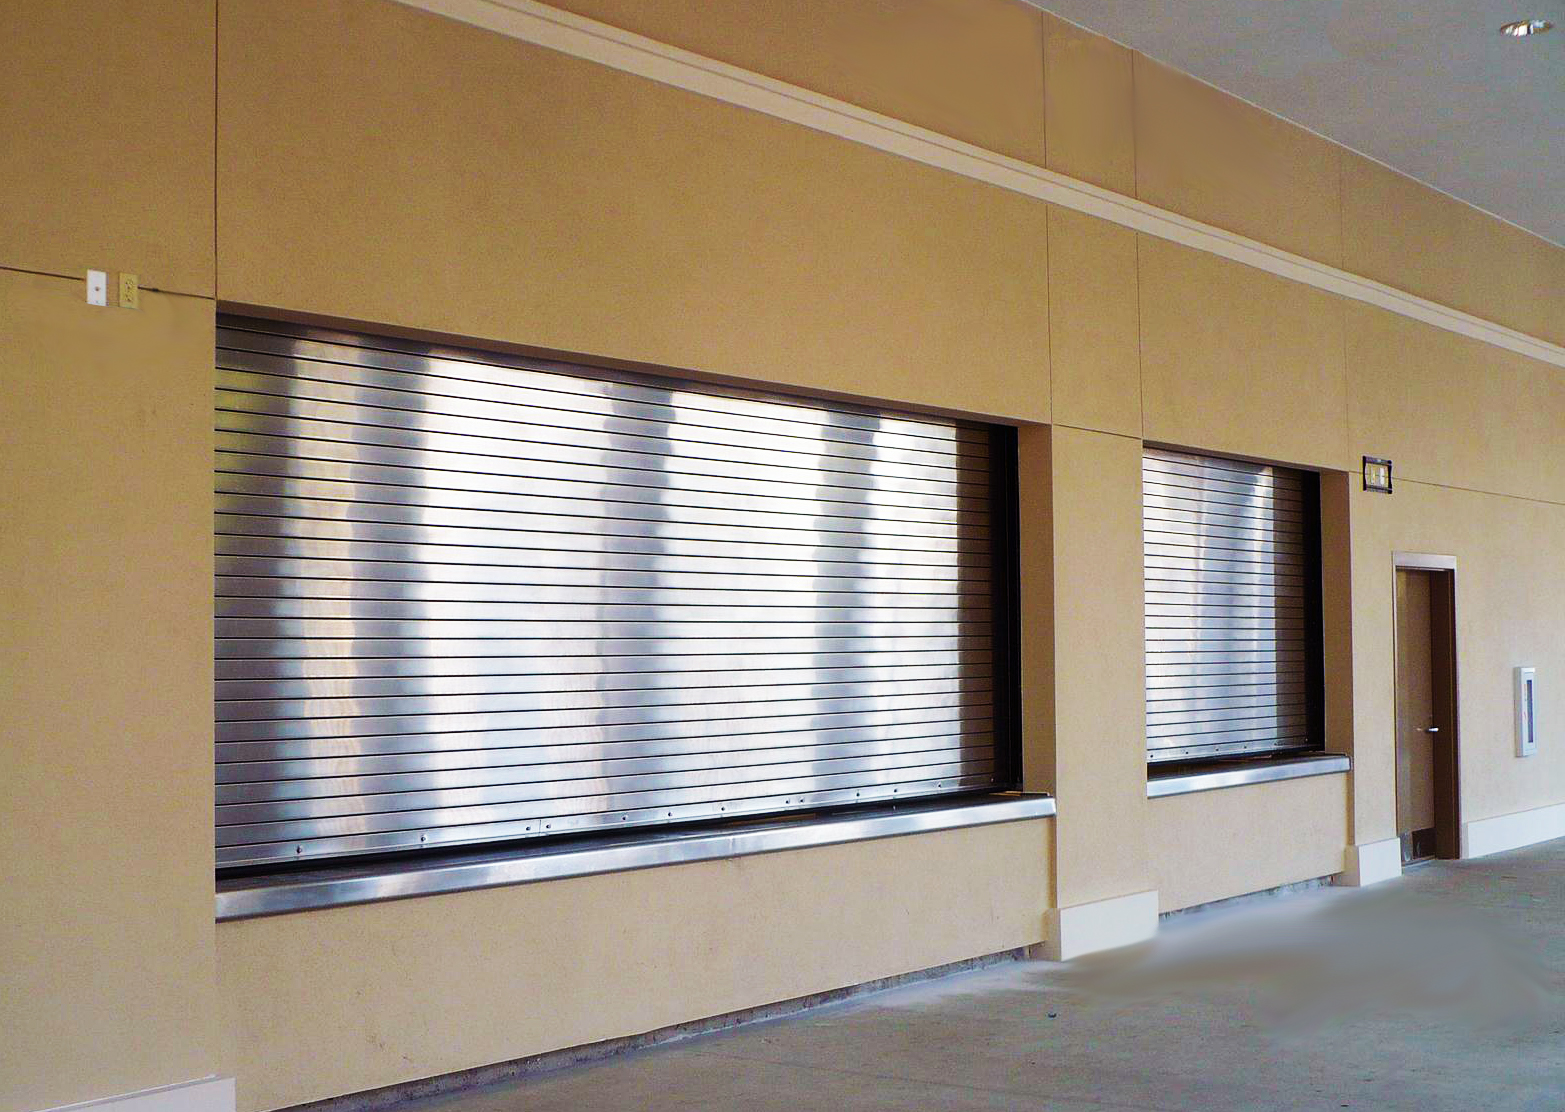 Service Doors Are Metal Slatted Rolling Doors Used To Provide Security  Against Entry Or Weather Protection At Exterior And Interior Openings In  Industrial, ...